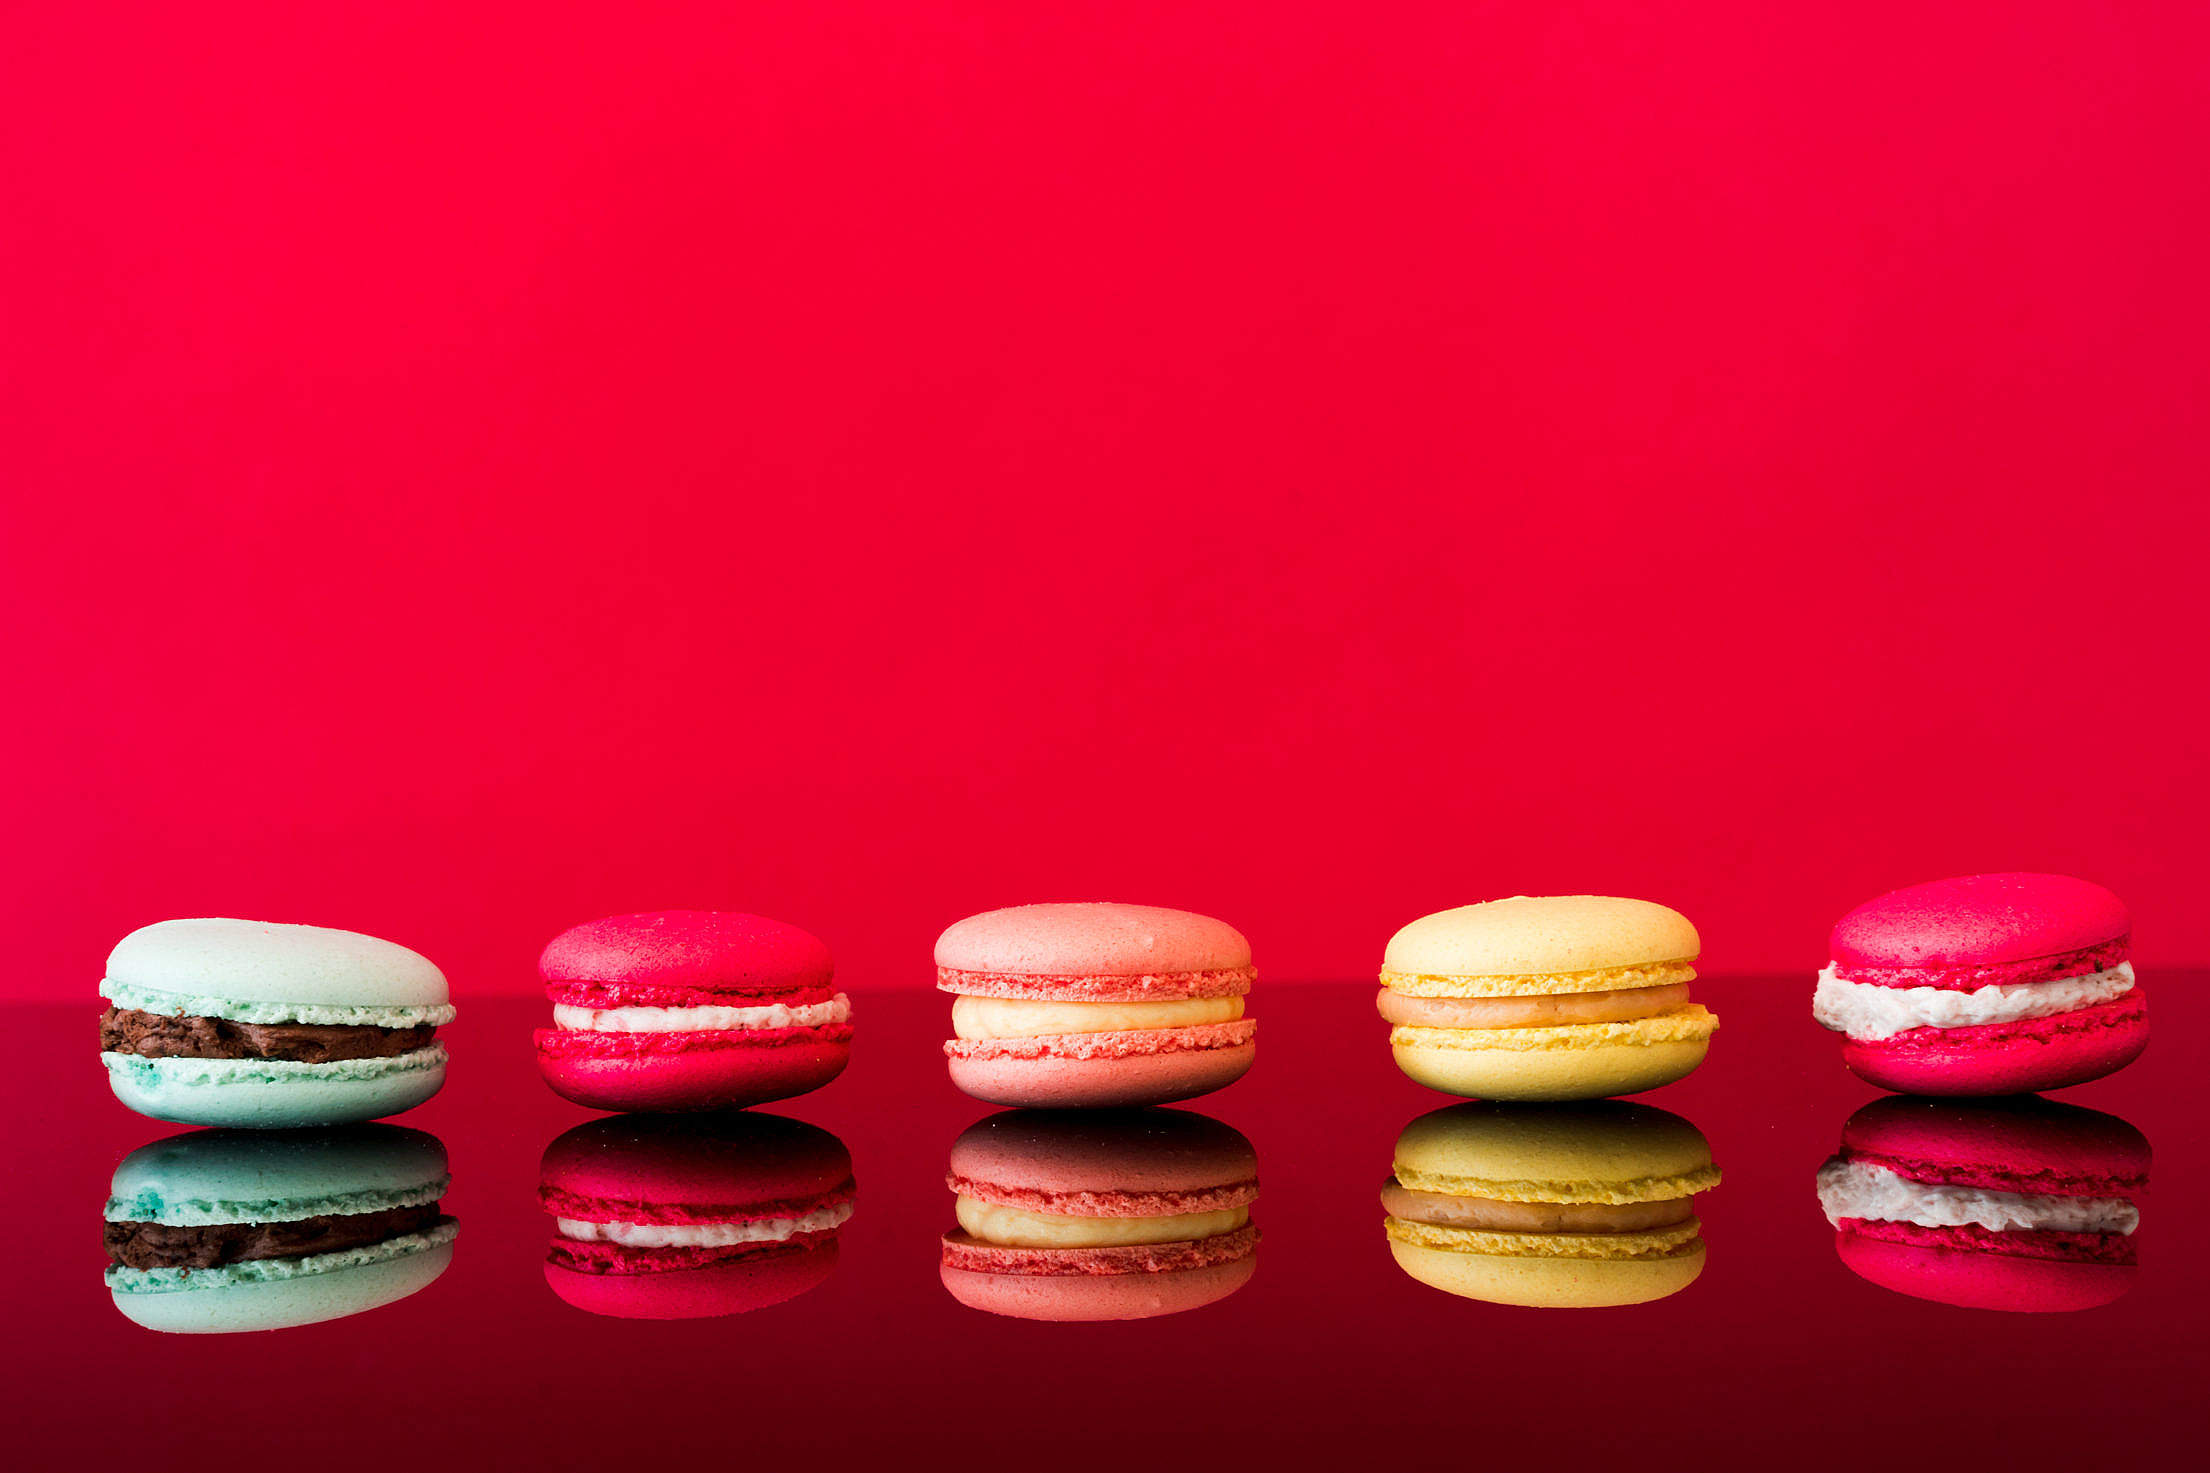 Colorful Yummy Macarons on Glossy Table and Red Background Free Stock Photo